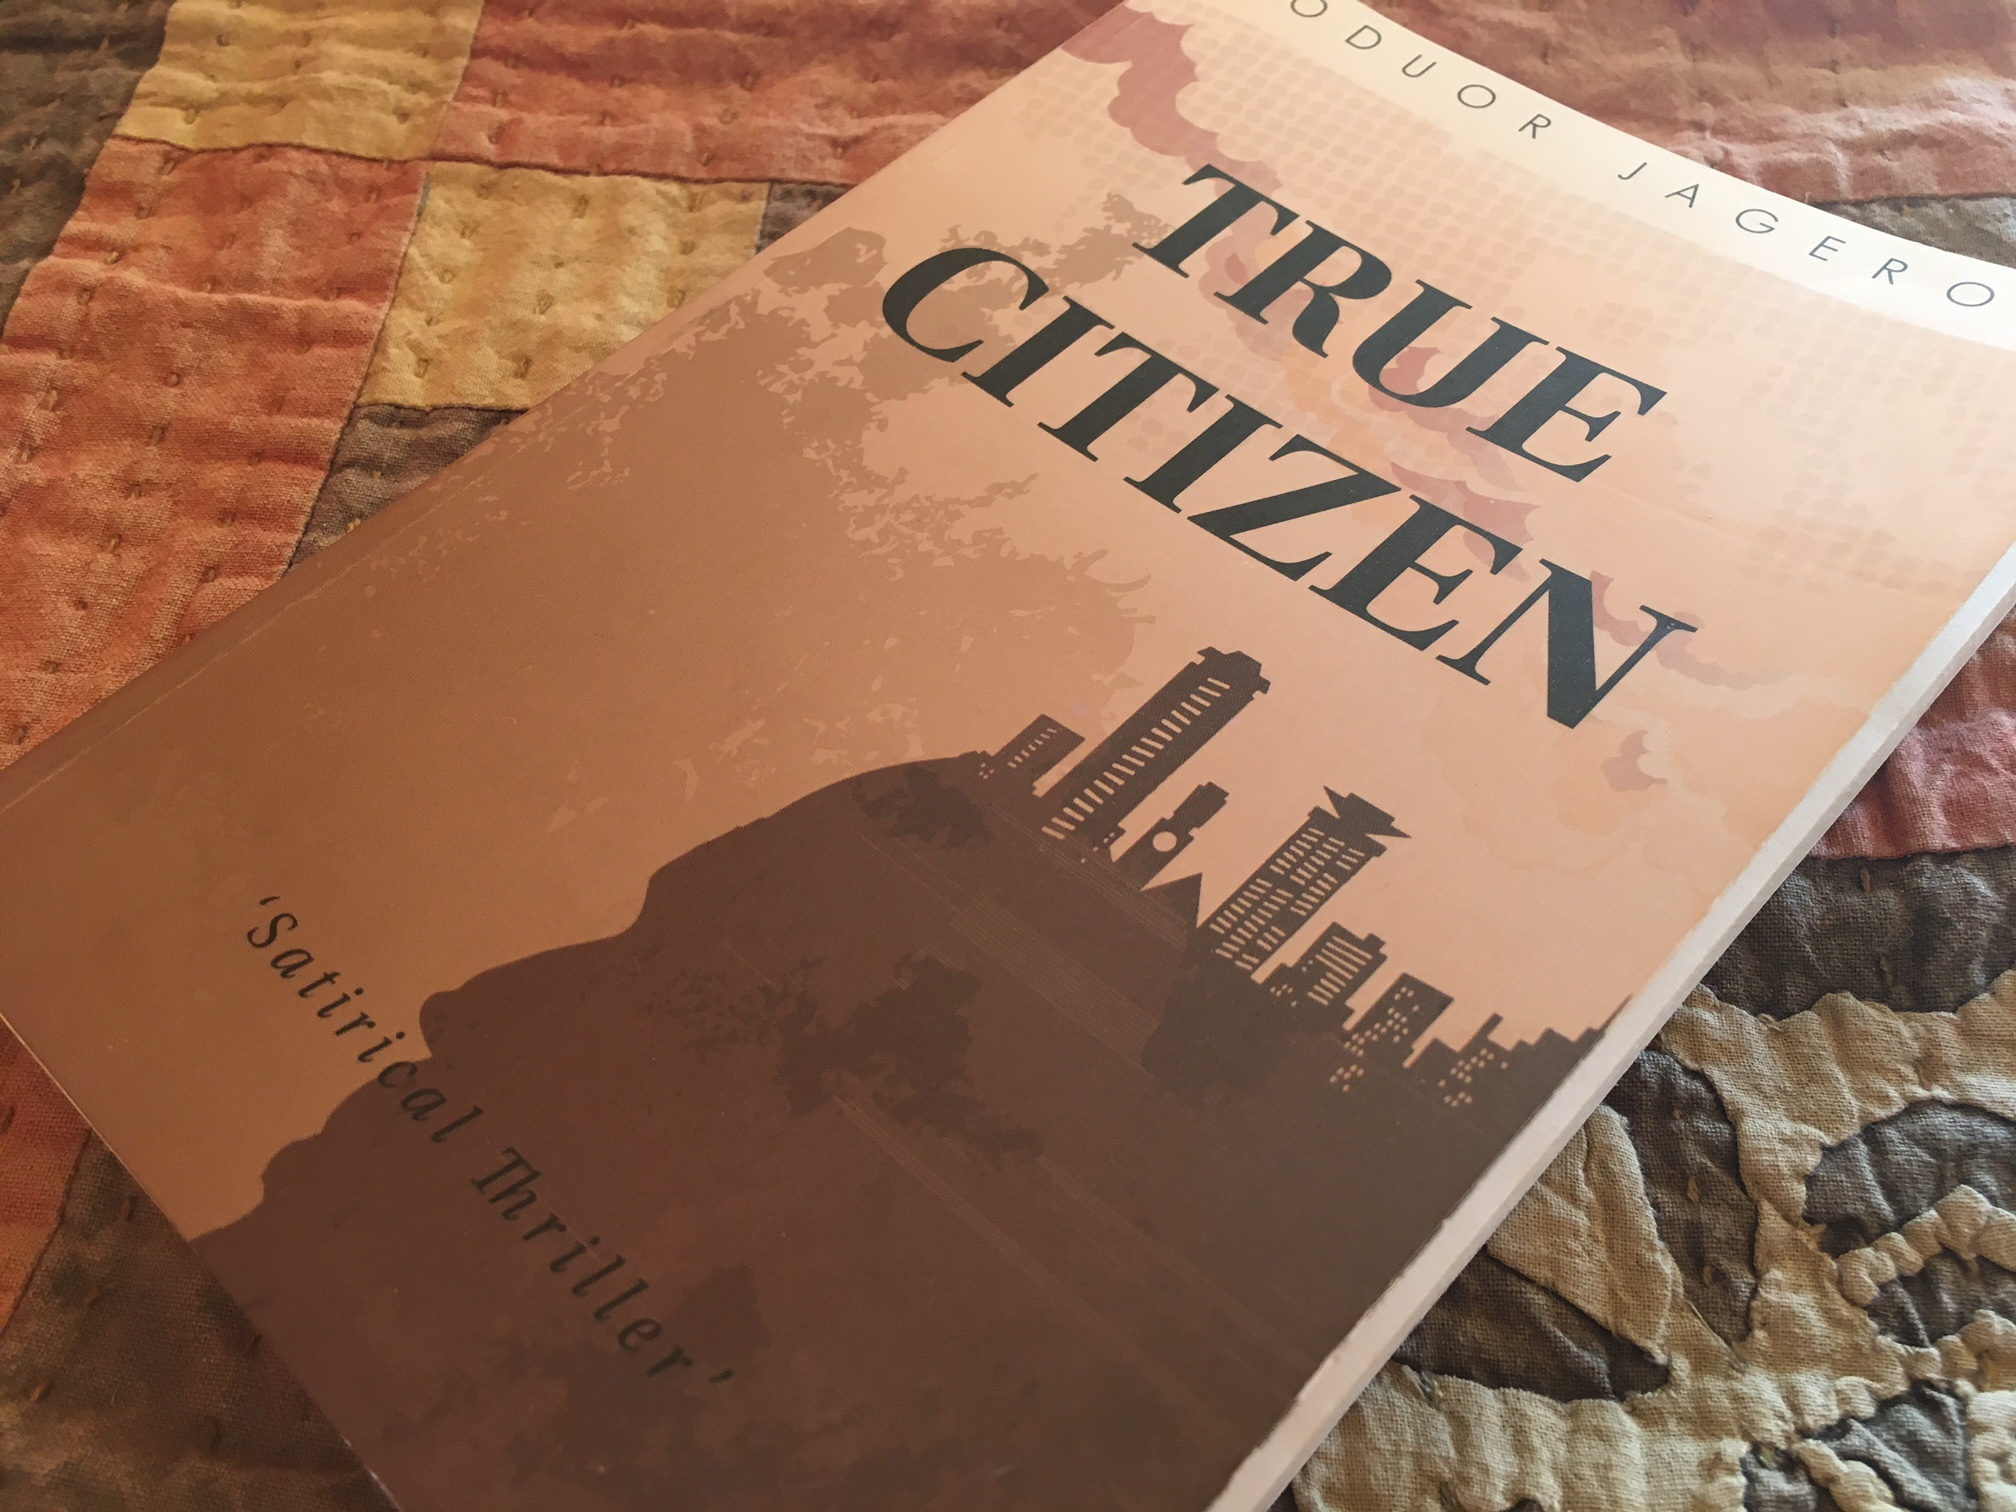 True Citizen - Oduor Jagero